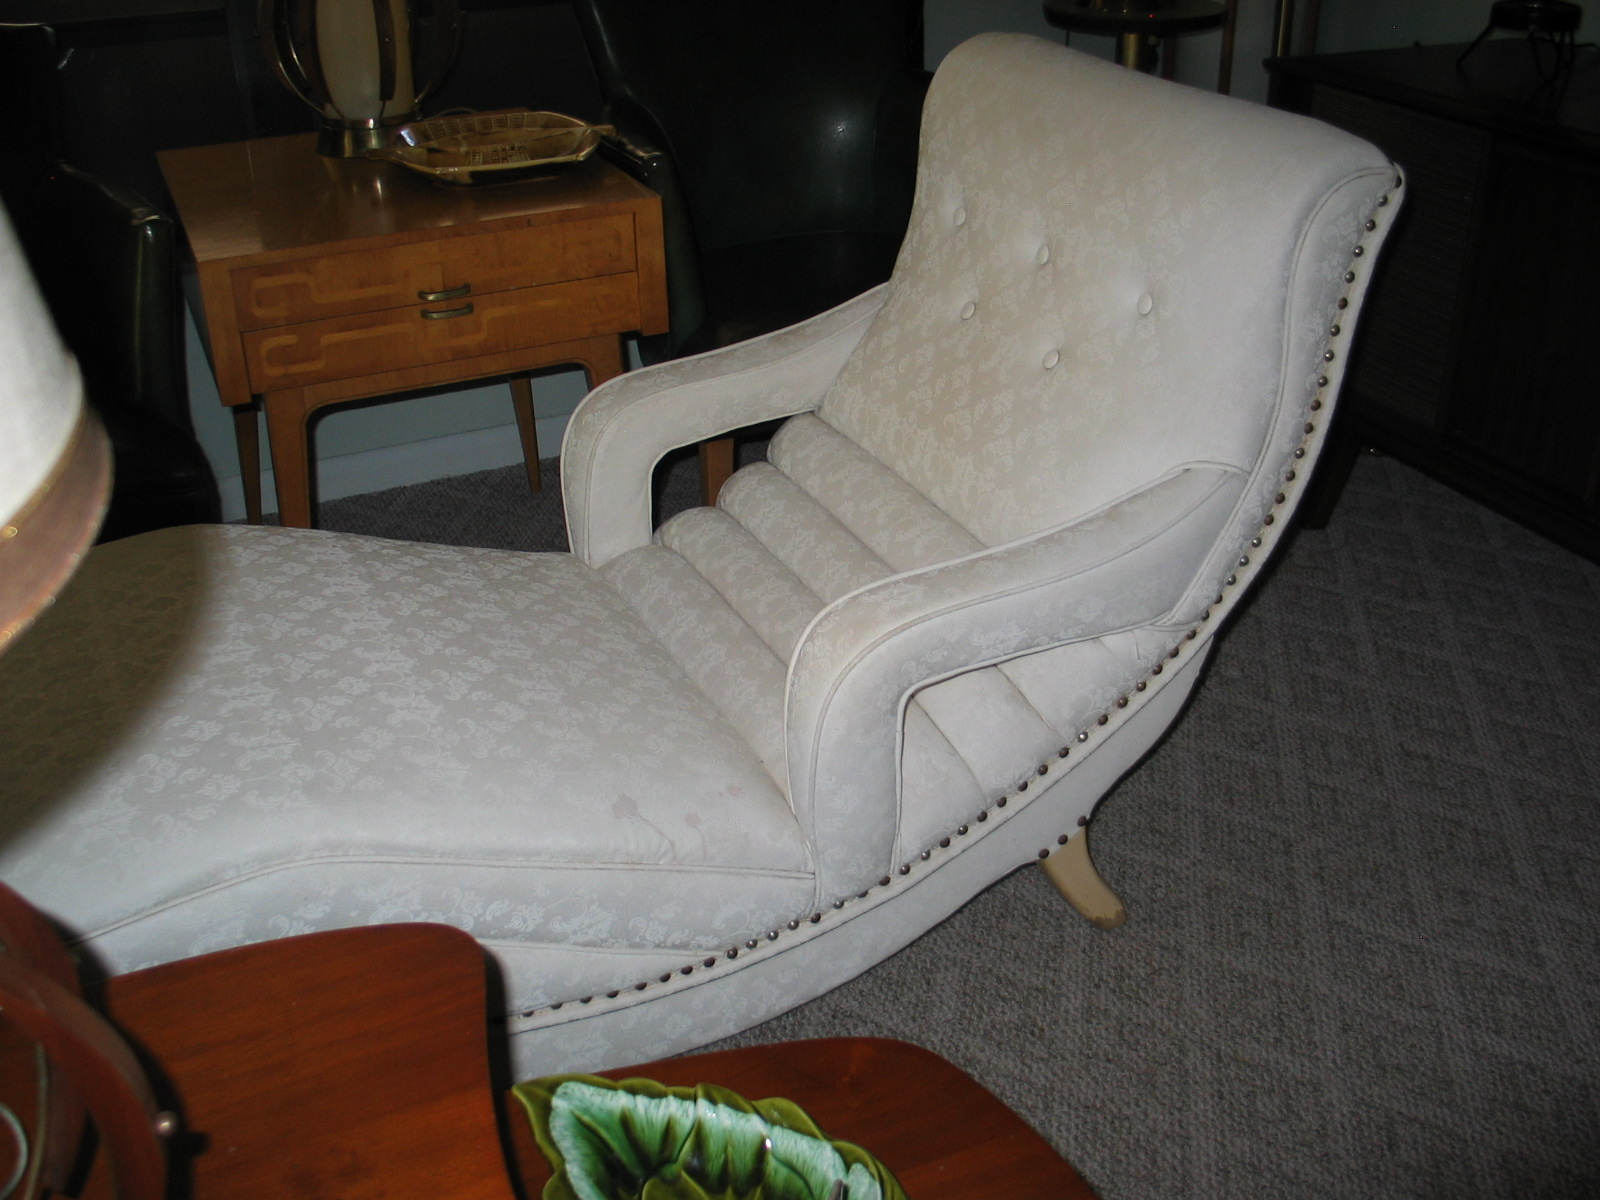 Dave s Mid Century Stuff Let s Identify This Contour Chair Lounge